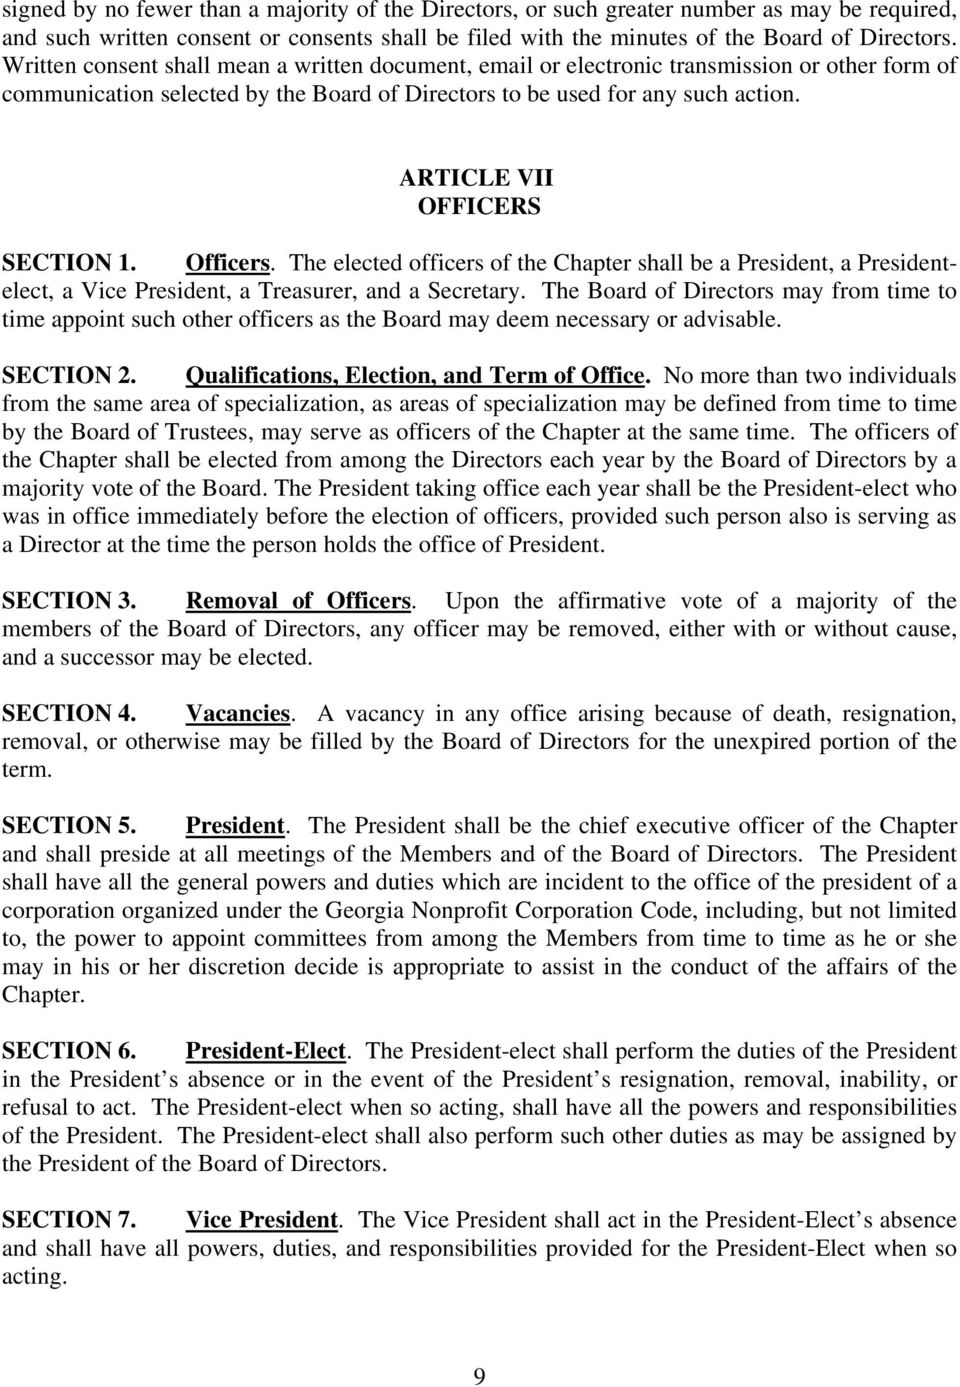 ARTICLE VII OFFICERS SECTION 1. Officers. The elected officers of the Chapter shall be a President, a Presidentelect, a Vice President, a Treasurer, and a Secretary.